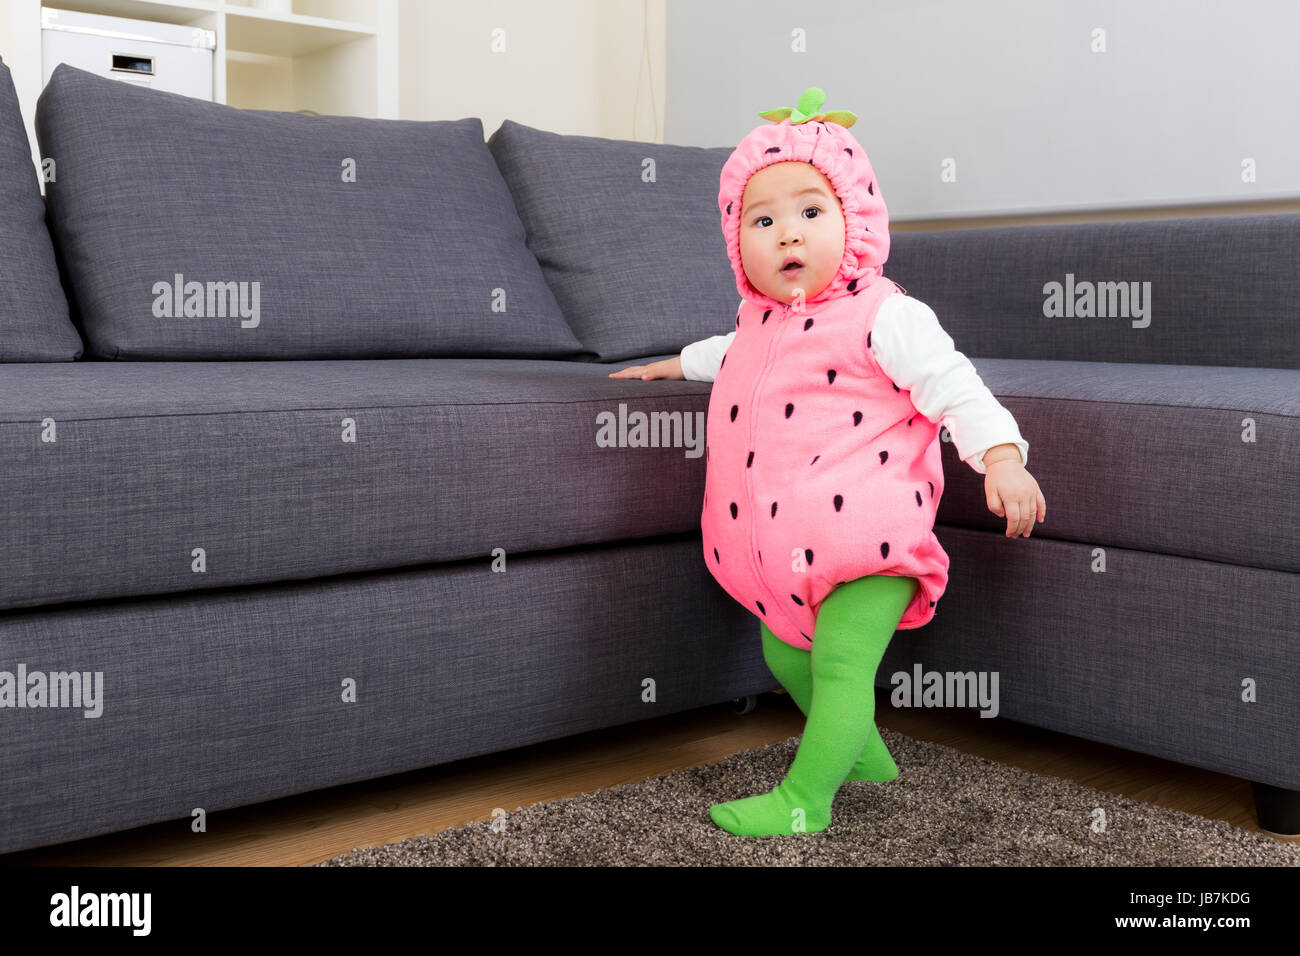 Asia baby with strawberry costume in halloween party  sc 1 st  Alamy & Asia baby with strawberry costume in halloween party Stock Photo ...